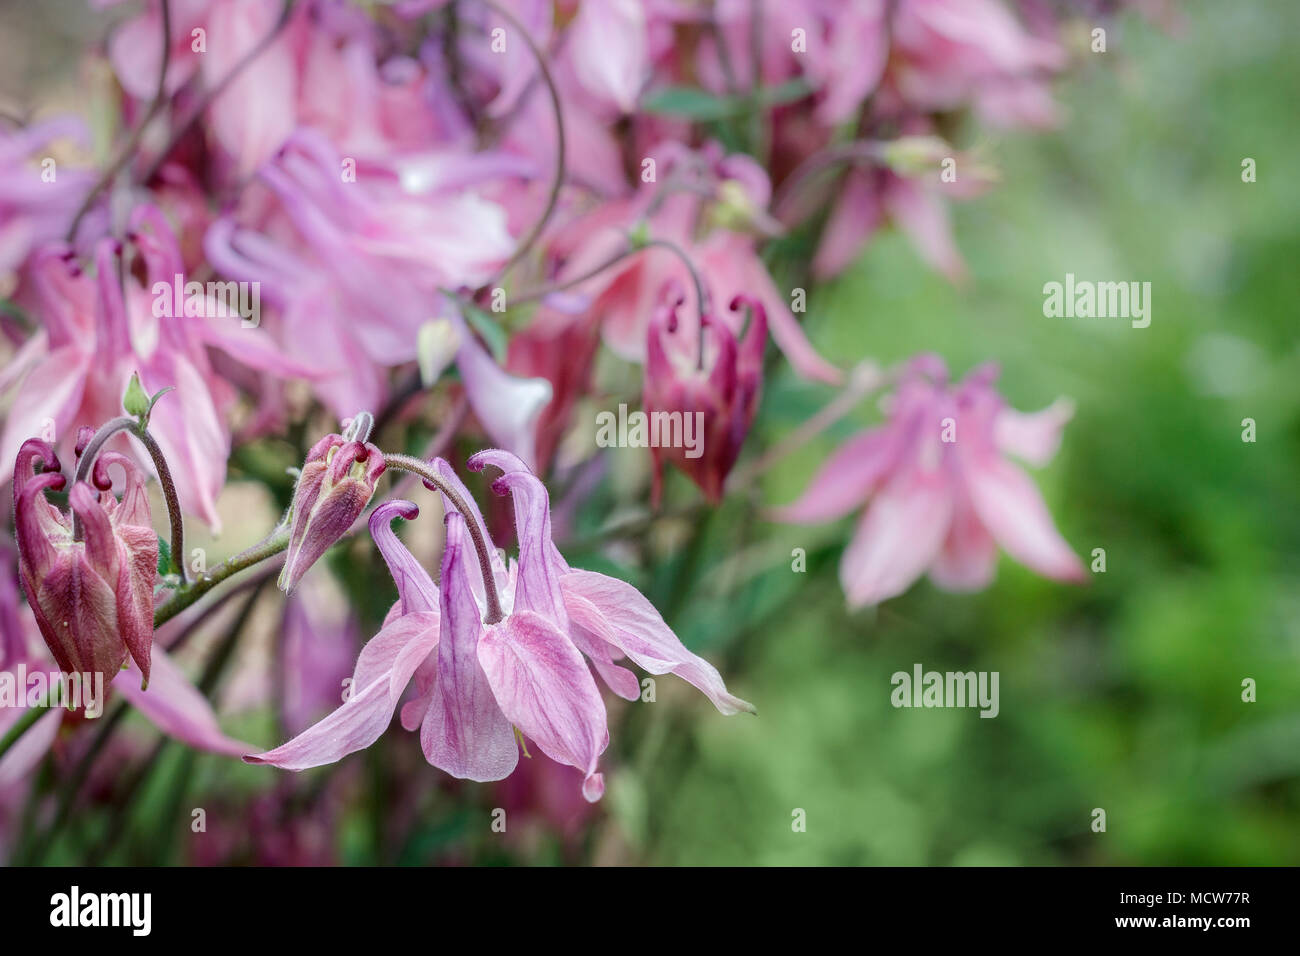 Pink columbine flowers, with their long nectar spurs, are viewed close-up against a blurred green background in late spring. - Stock Image